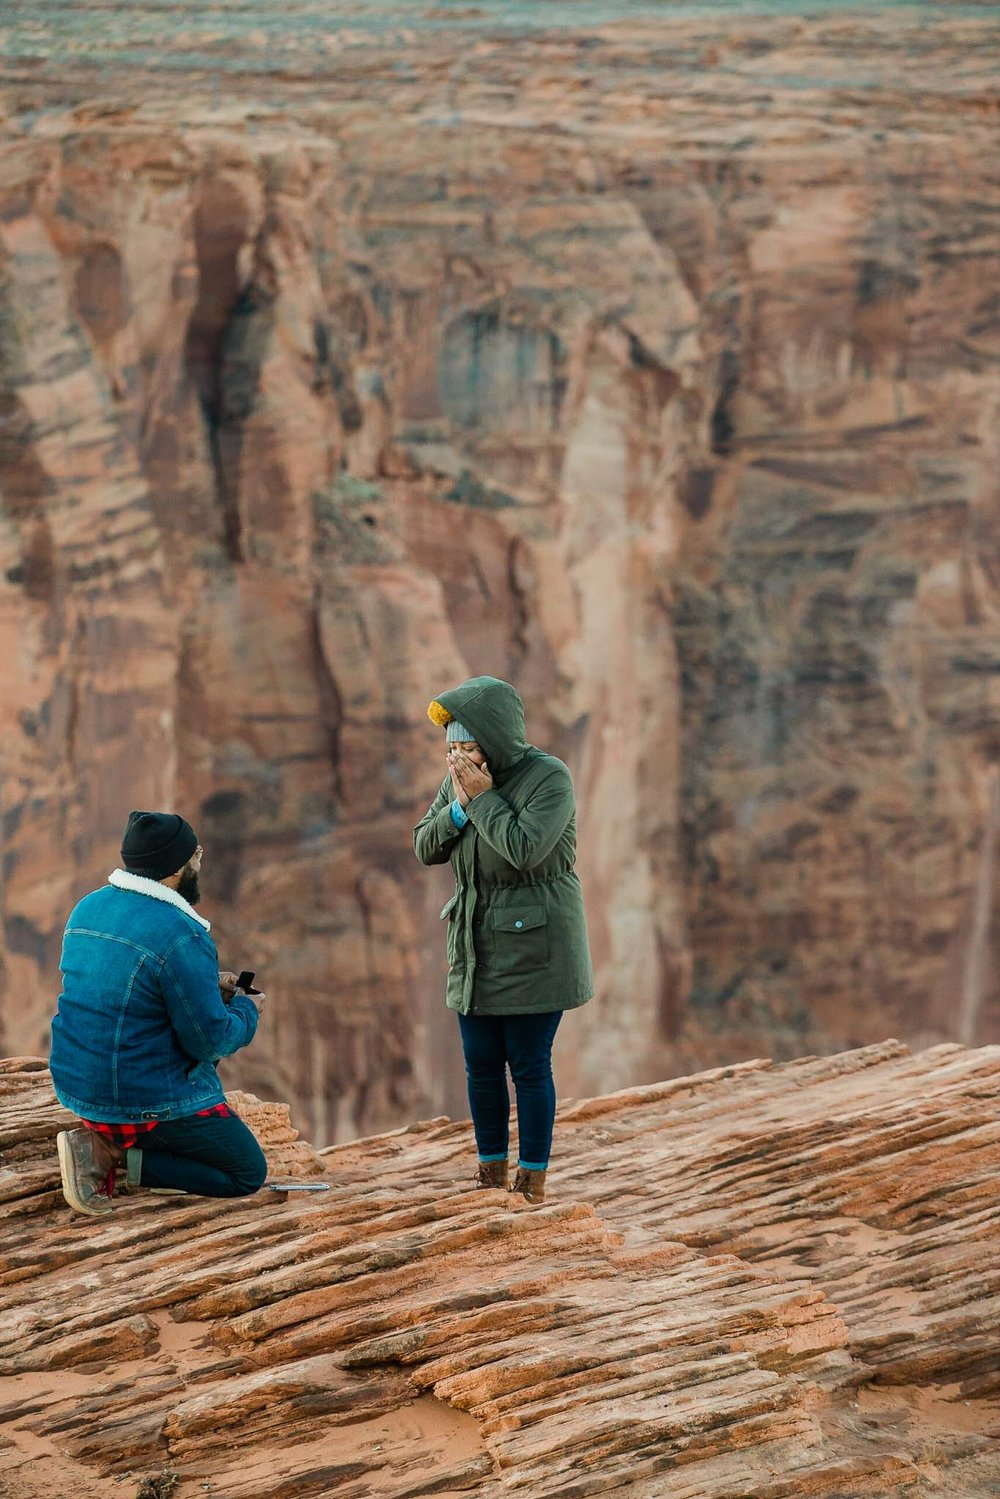 Proposals - Are you getting ready to pop the question? Awesome, we can't wait to see the look on your lover's face when you do! Let's make a plan and surprise the heck out of them!